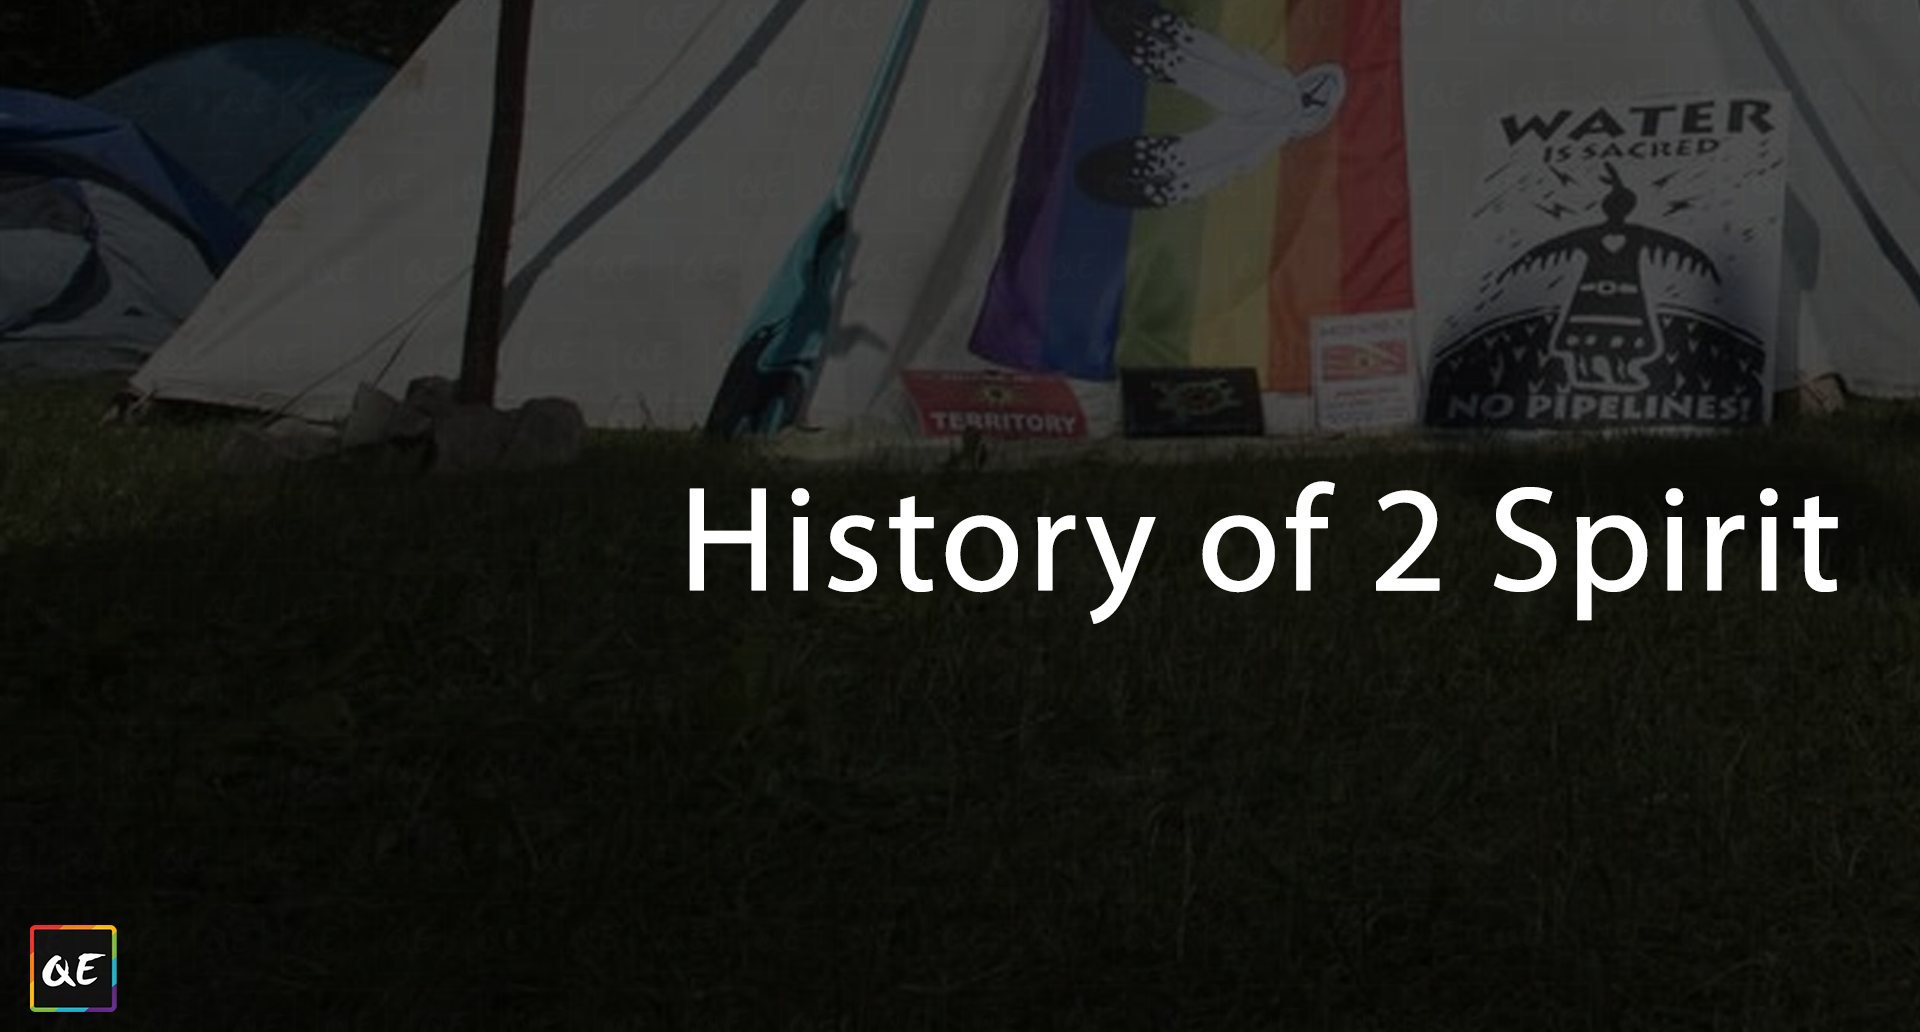 QueerEvents.ca - Queer Culture - Two-Spirit History of 2Spirit